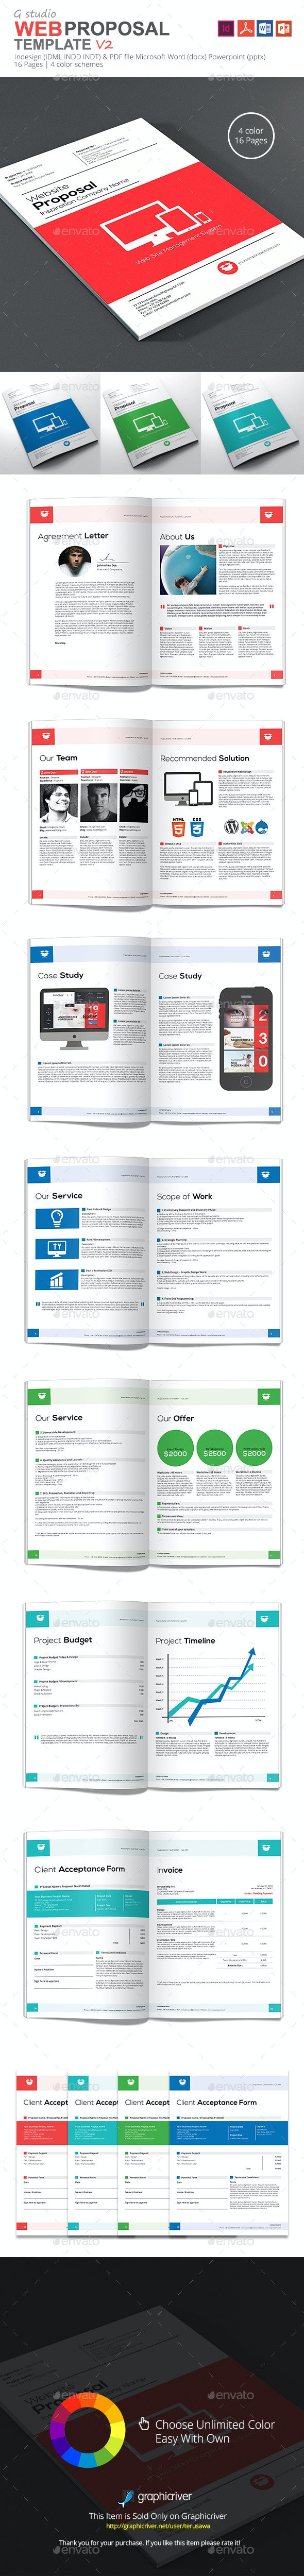 Gstudio Web Proposal Template V2 - Proposals & Invoices Stationery